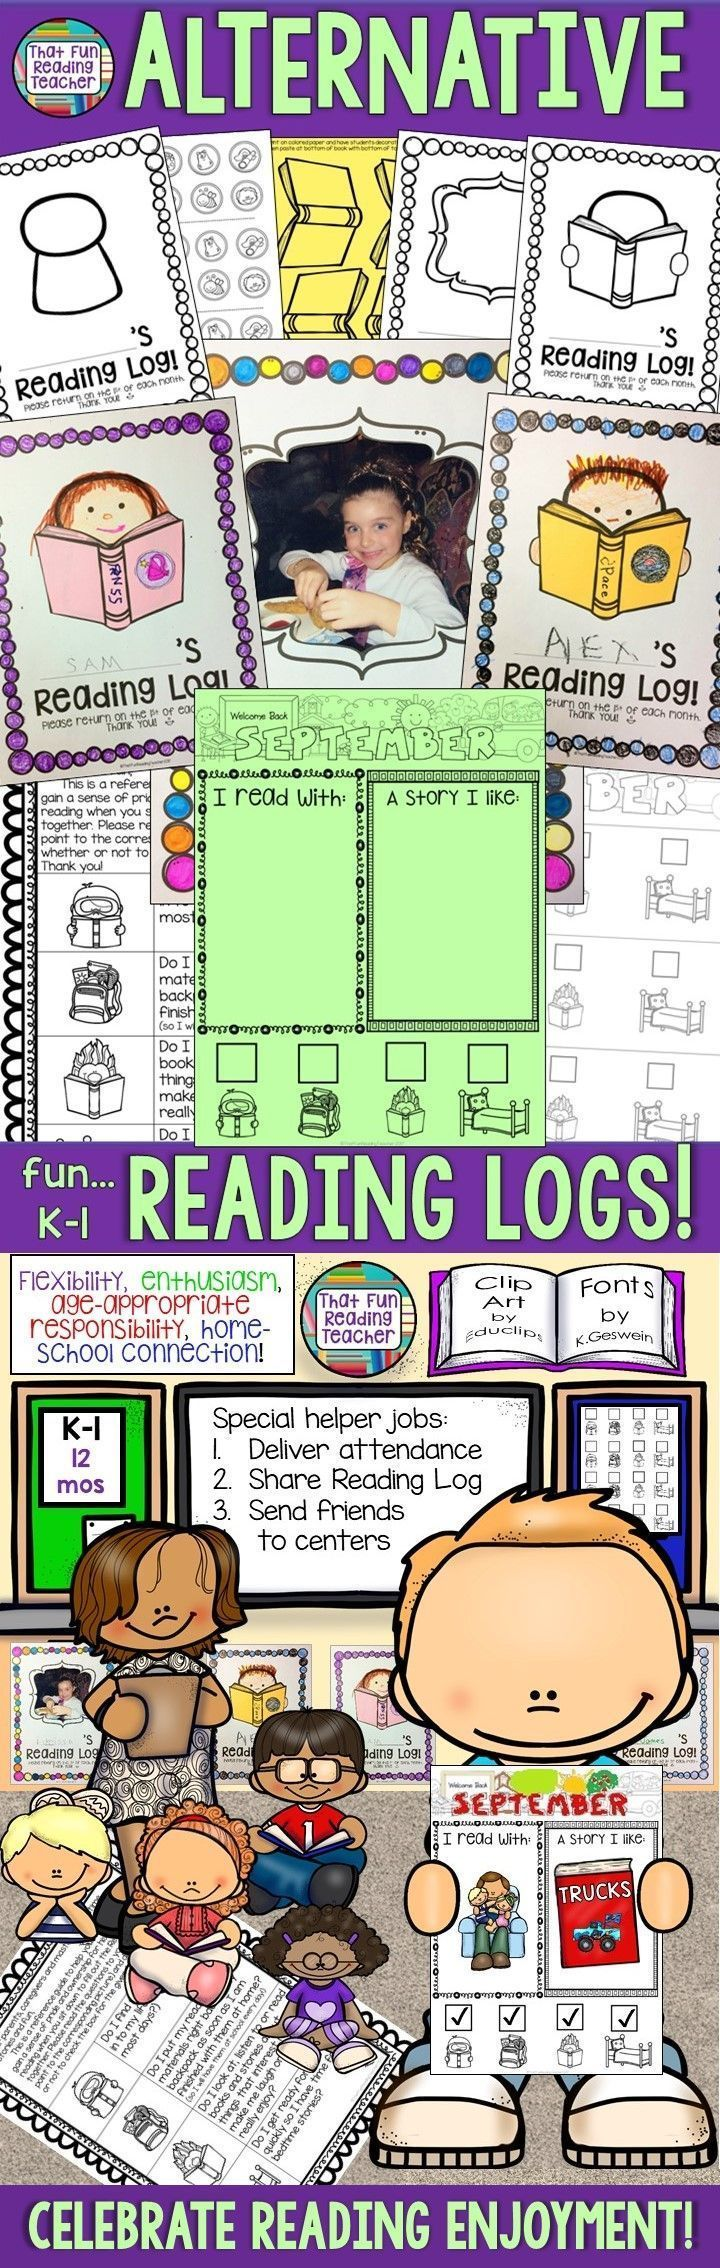 This is one of the ways I promote reading for enjoyment, along with an age-appropriate sense of pride and responsibility for K-1 students. Alternative, fun reading logs - rejigged! $